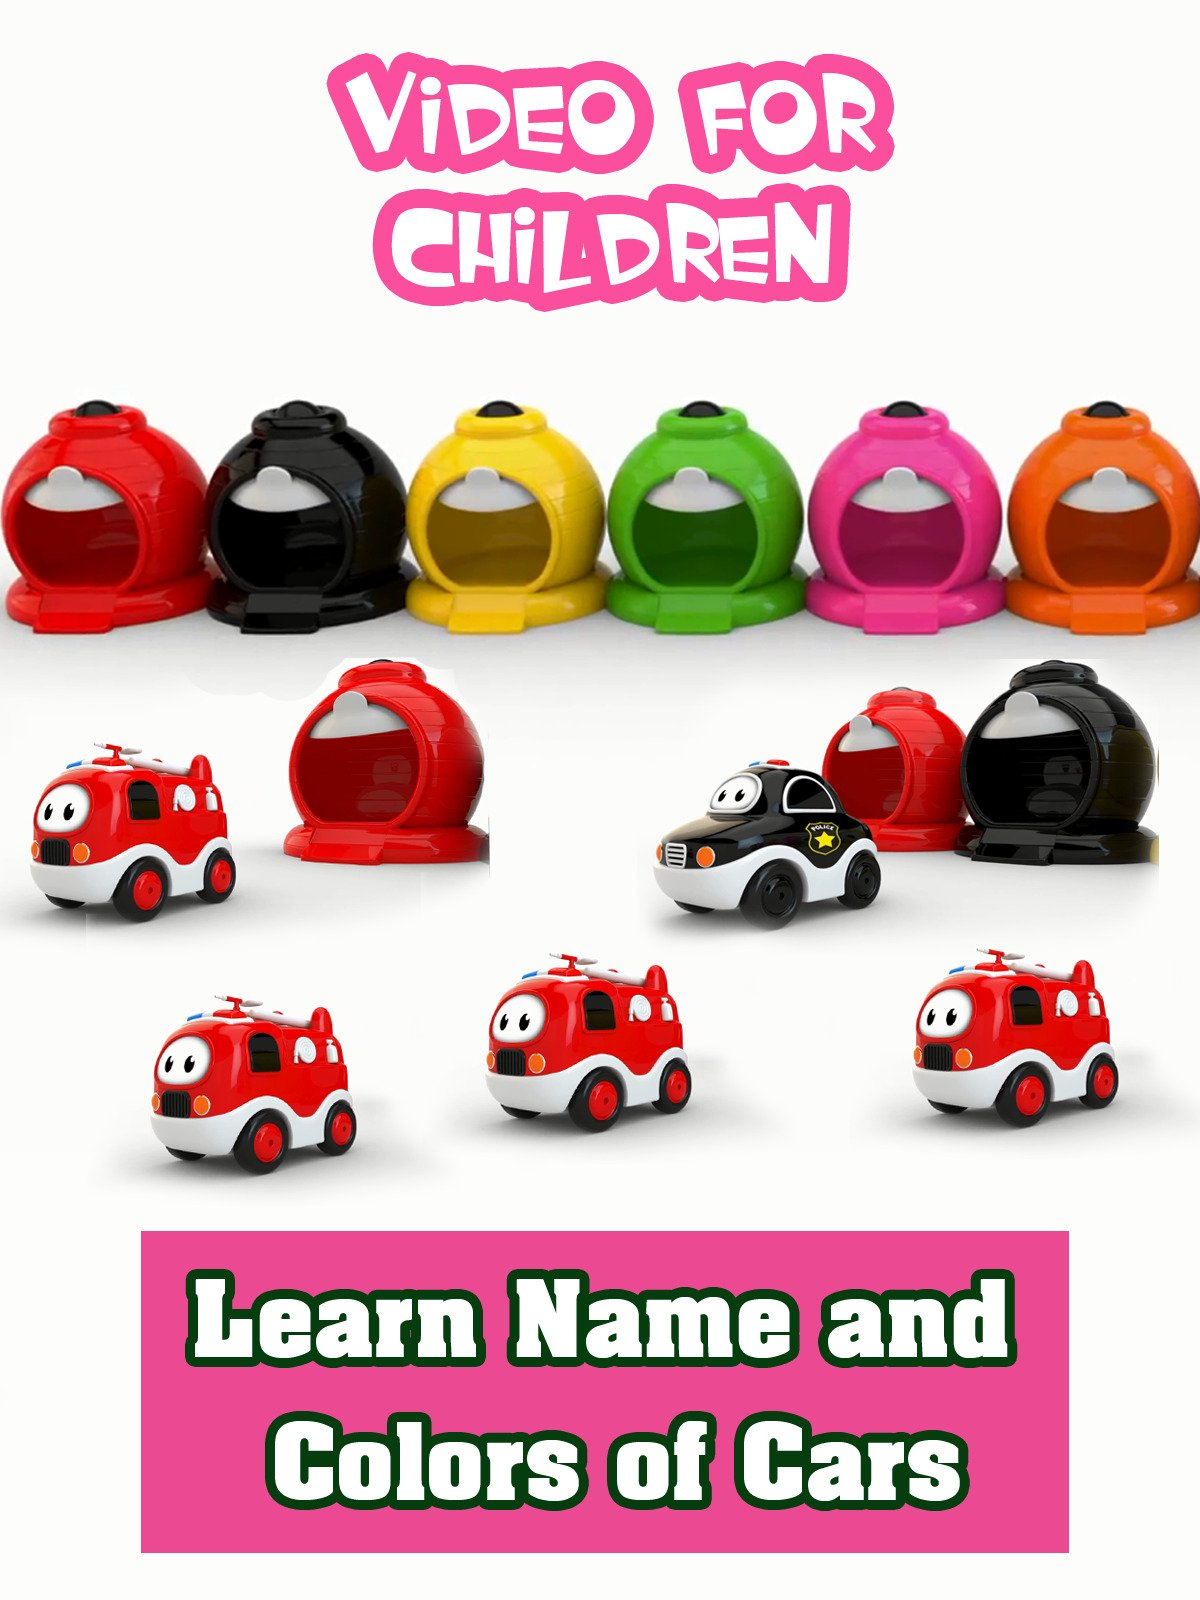 Learn Name and Colors of Cars